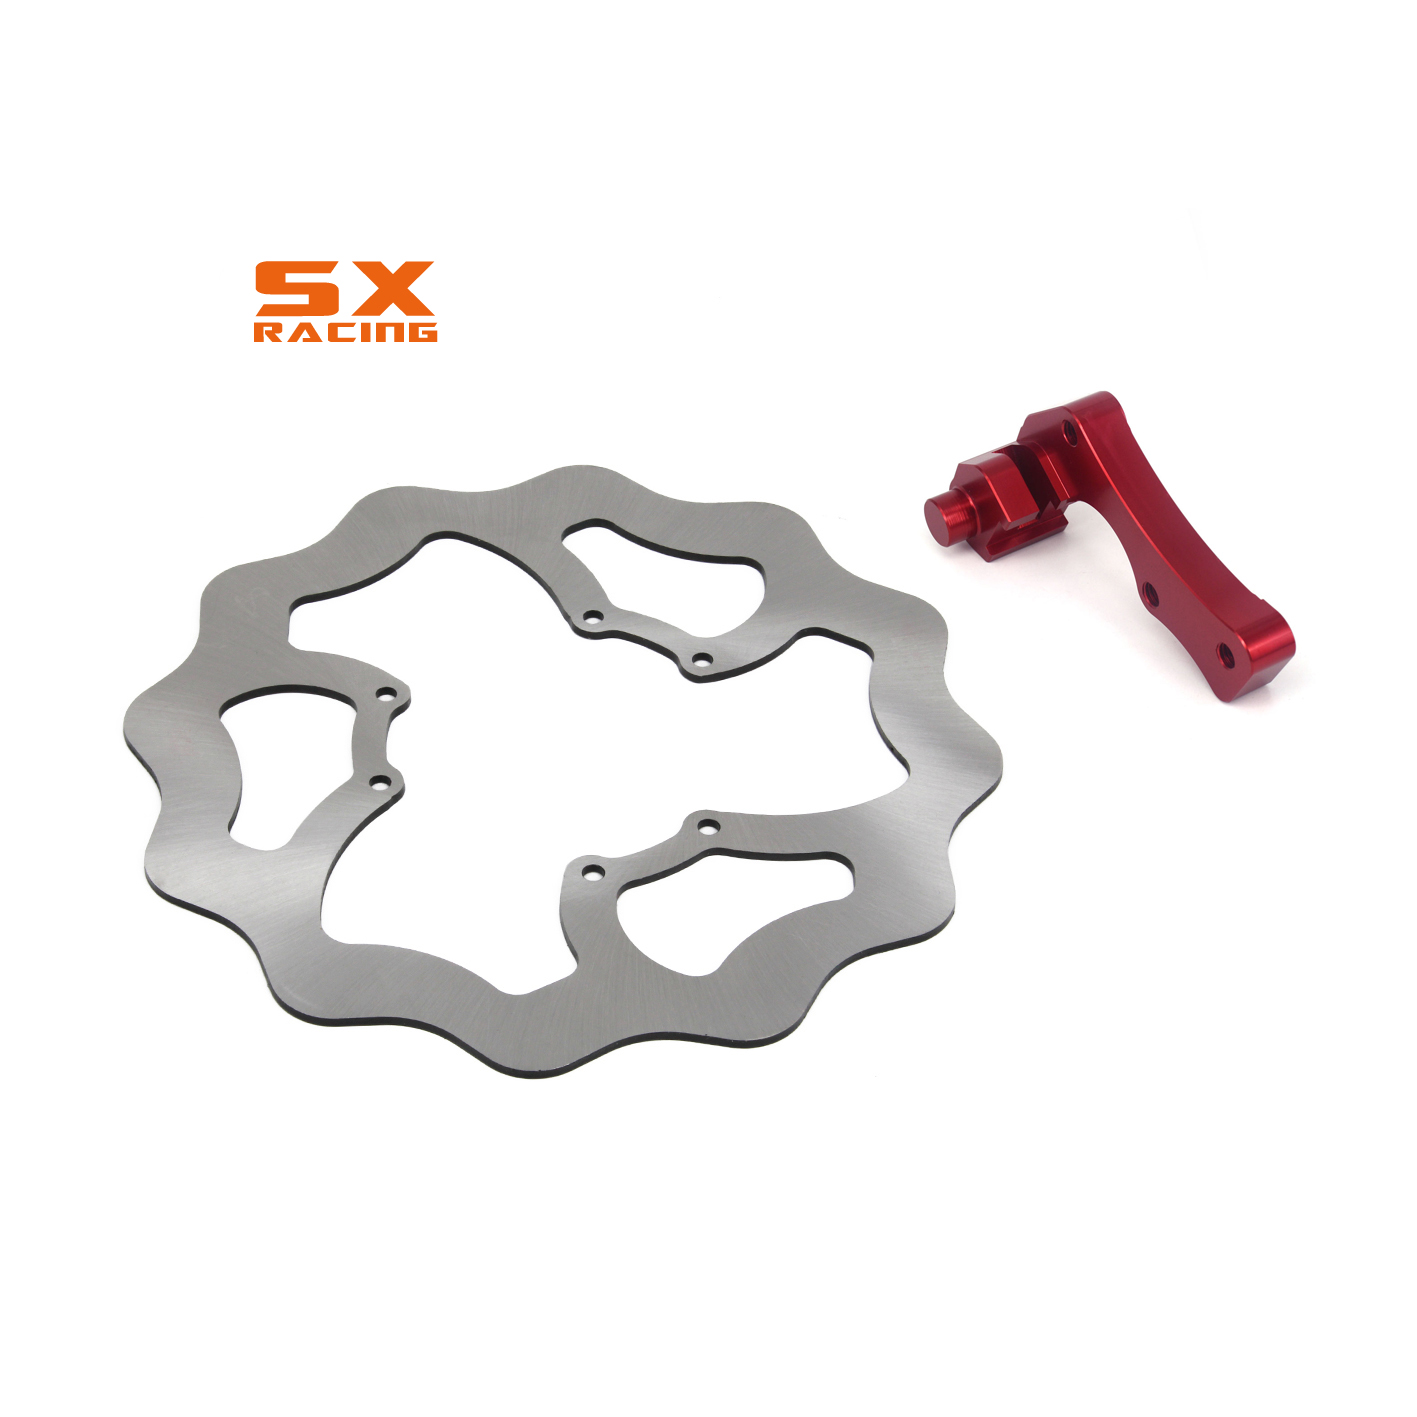 270mm Motorcycle Front Brake Disc Rotor & Adapter Bracket For HONDA CR125E 250 CR125R 250 CRE250F CRF250R CRF450R CRF450X motorcycle brake disc rotor for honda 125 250 pantheon 98 07 250 forza jazz foresight for peugeot sv250 02 07 cagiva elefant